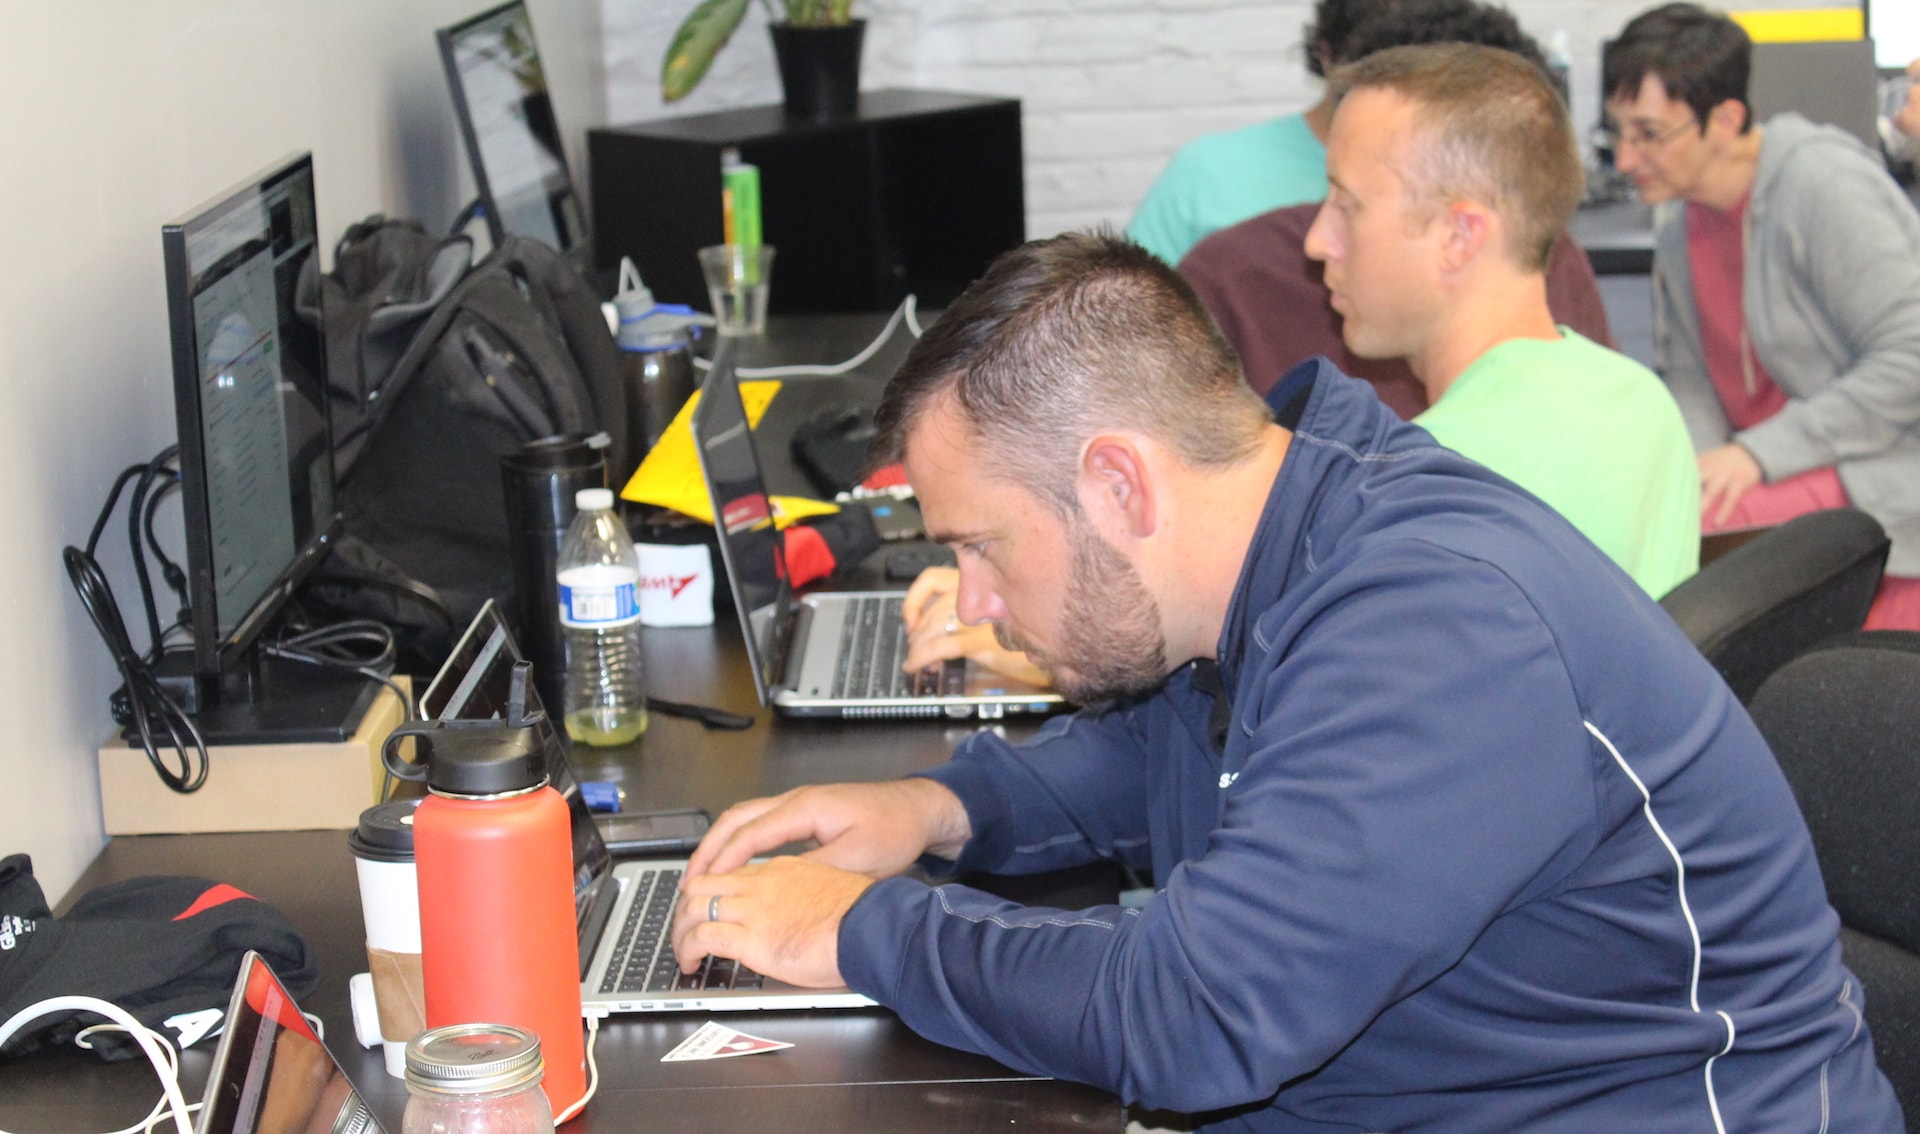 Adults learn to code at Awesome Inc